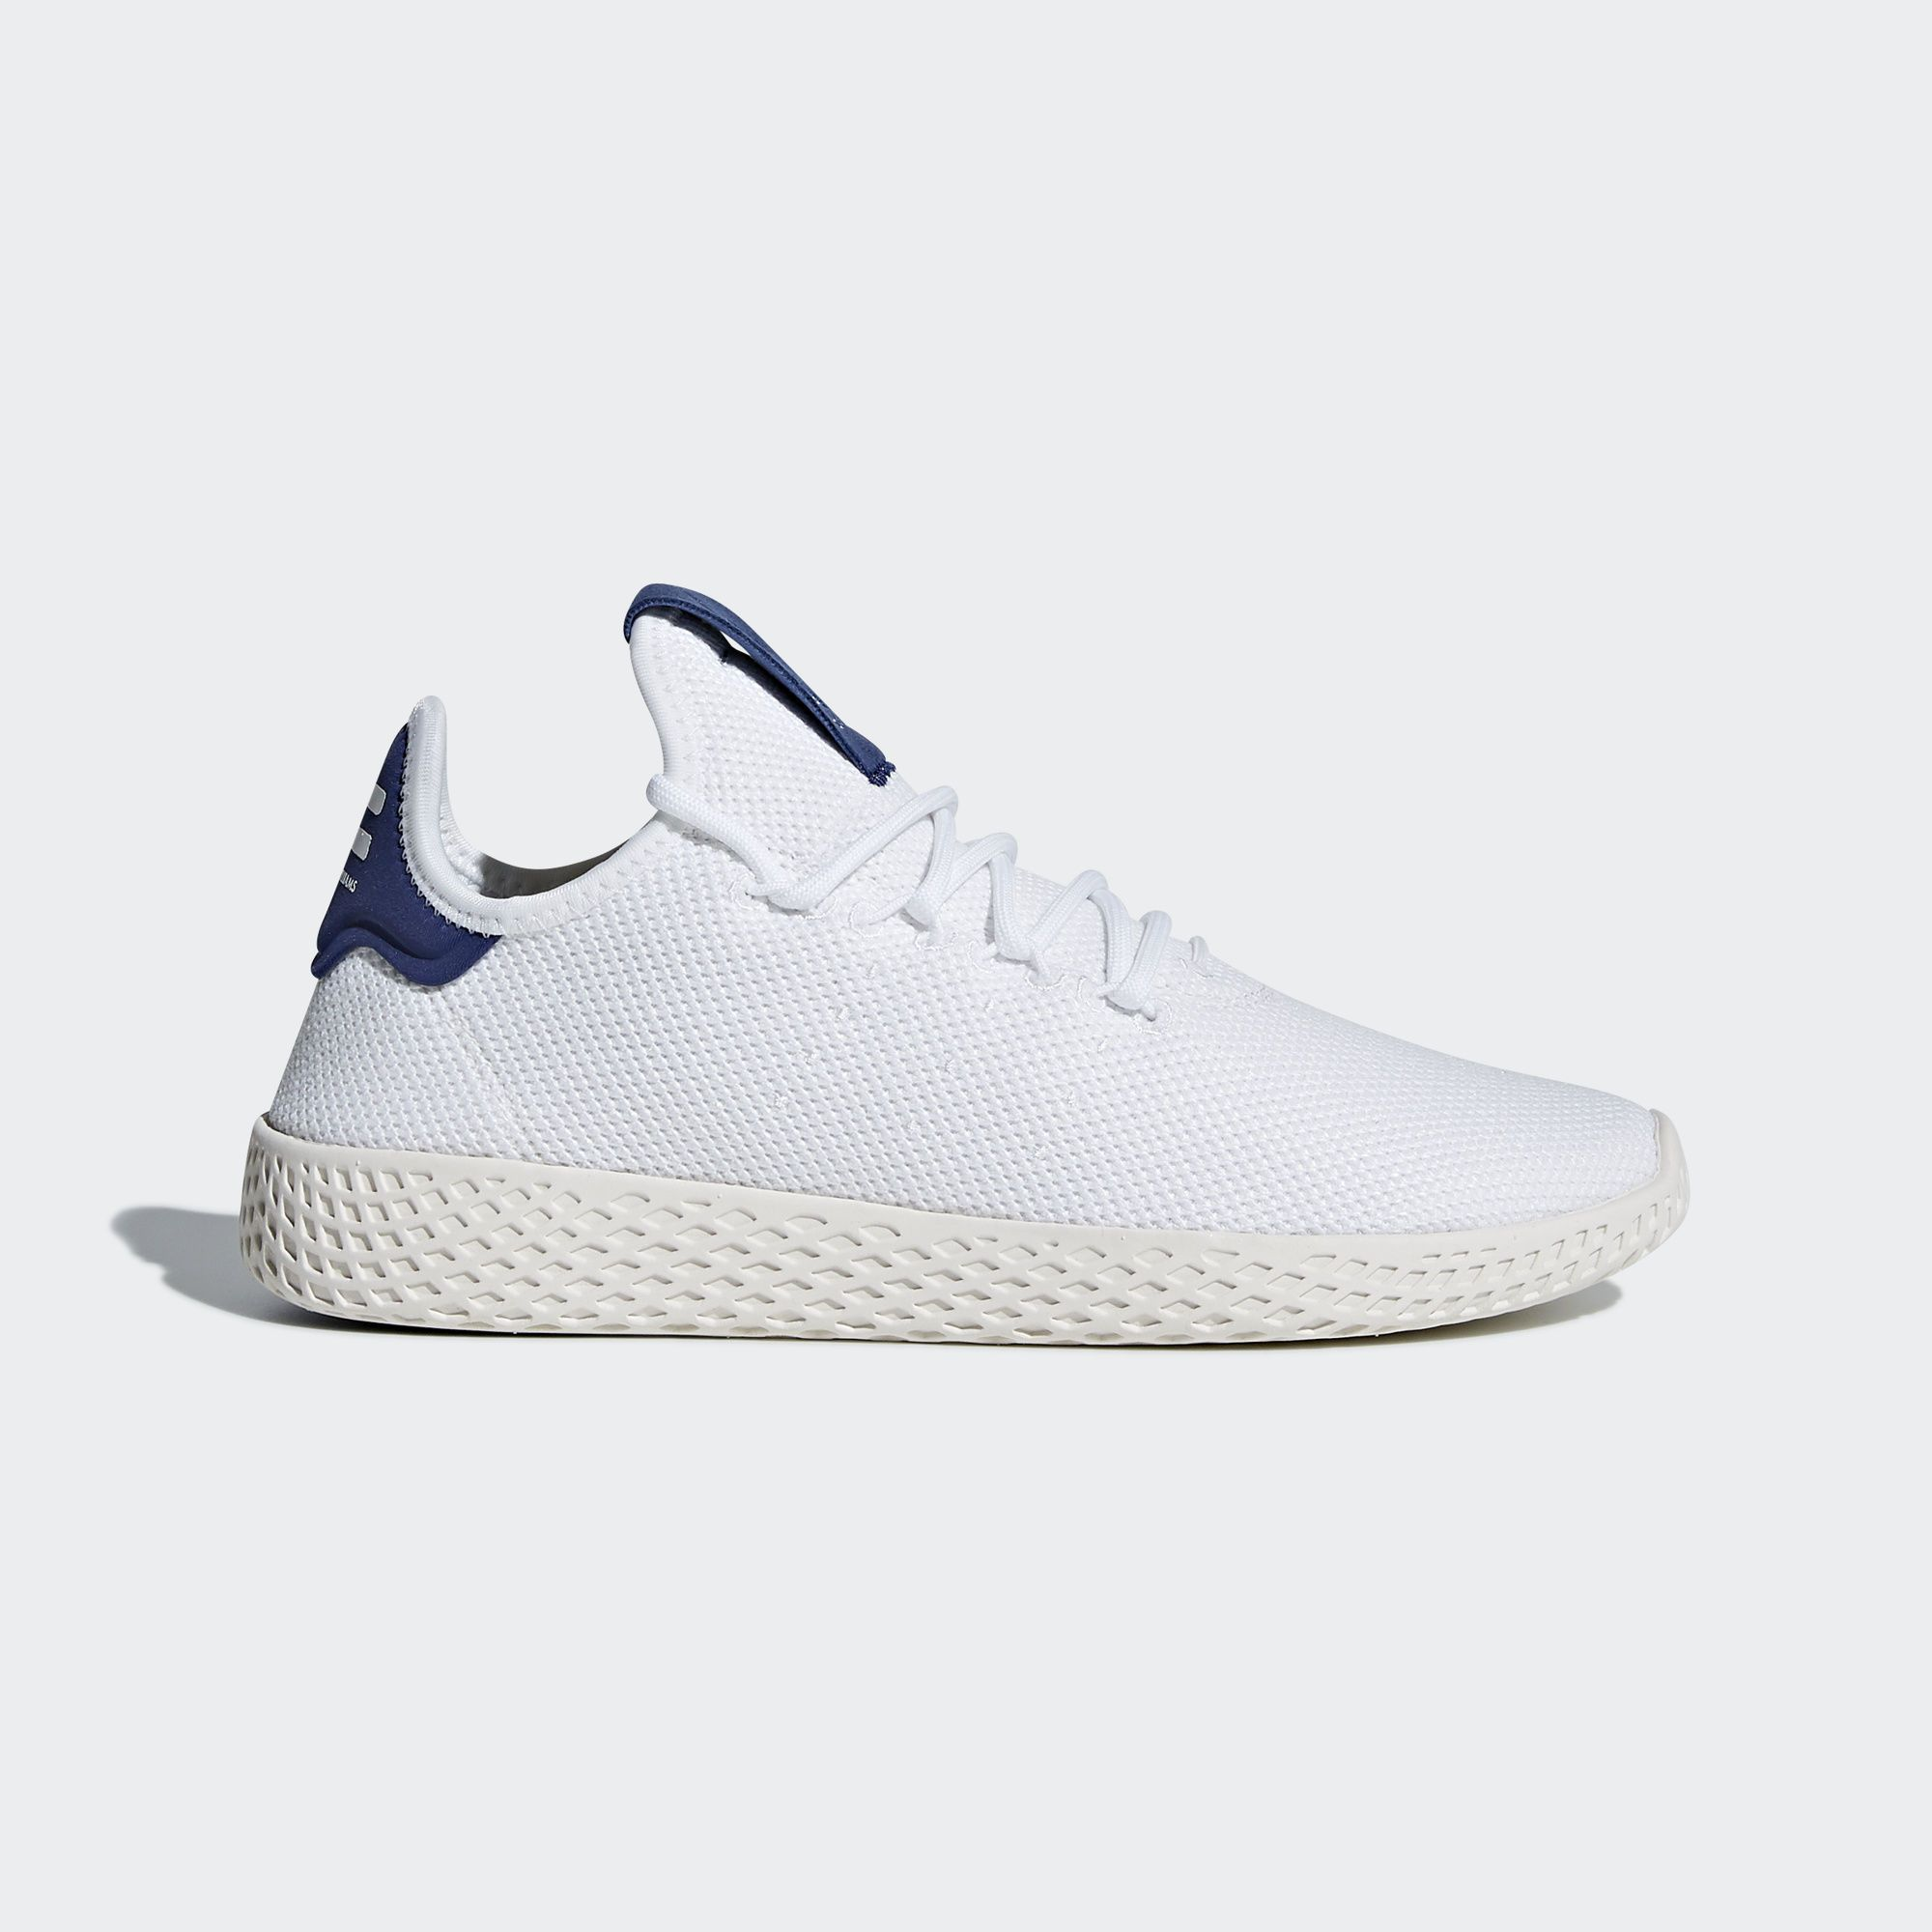 separation shoes ca29d ace70 Shop the Pharrell Williams Tennis Hu Shoes - White at adidas.com us! See  all the styles and colors of Pharrell Williams Tennis Hu Shoes - White at  the ...